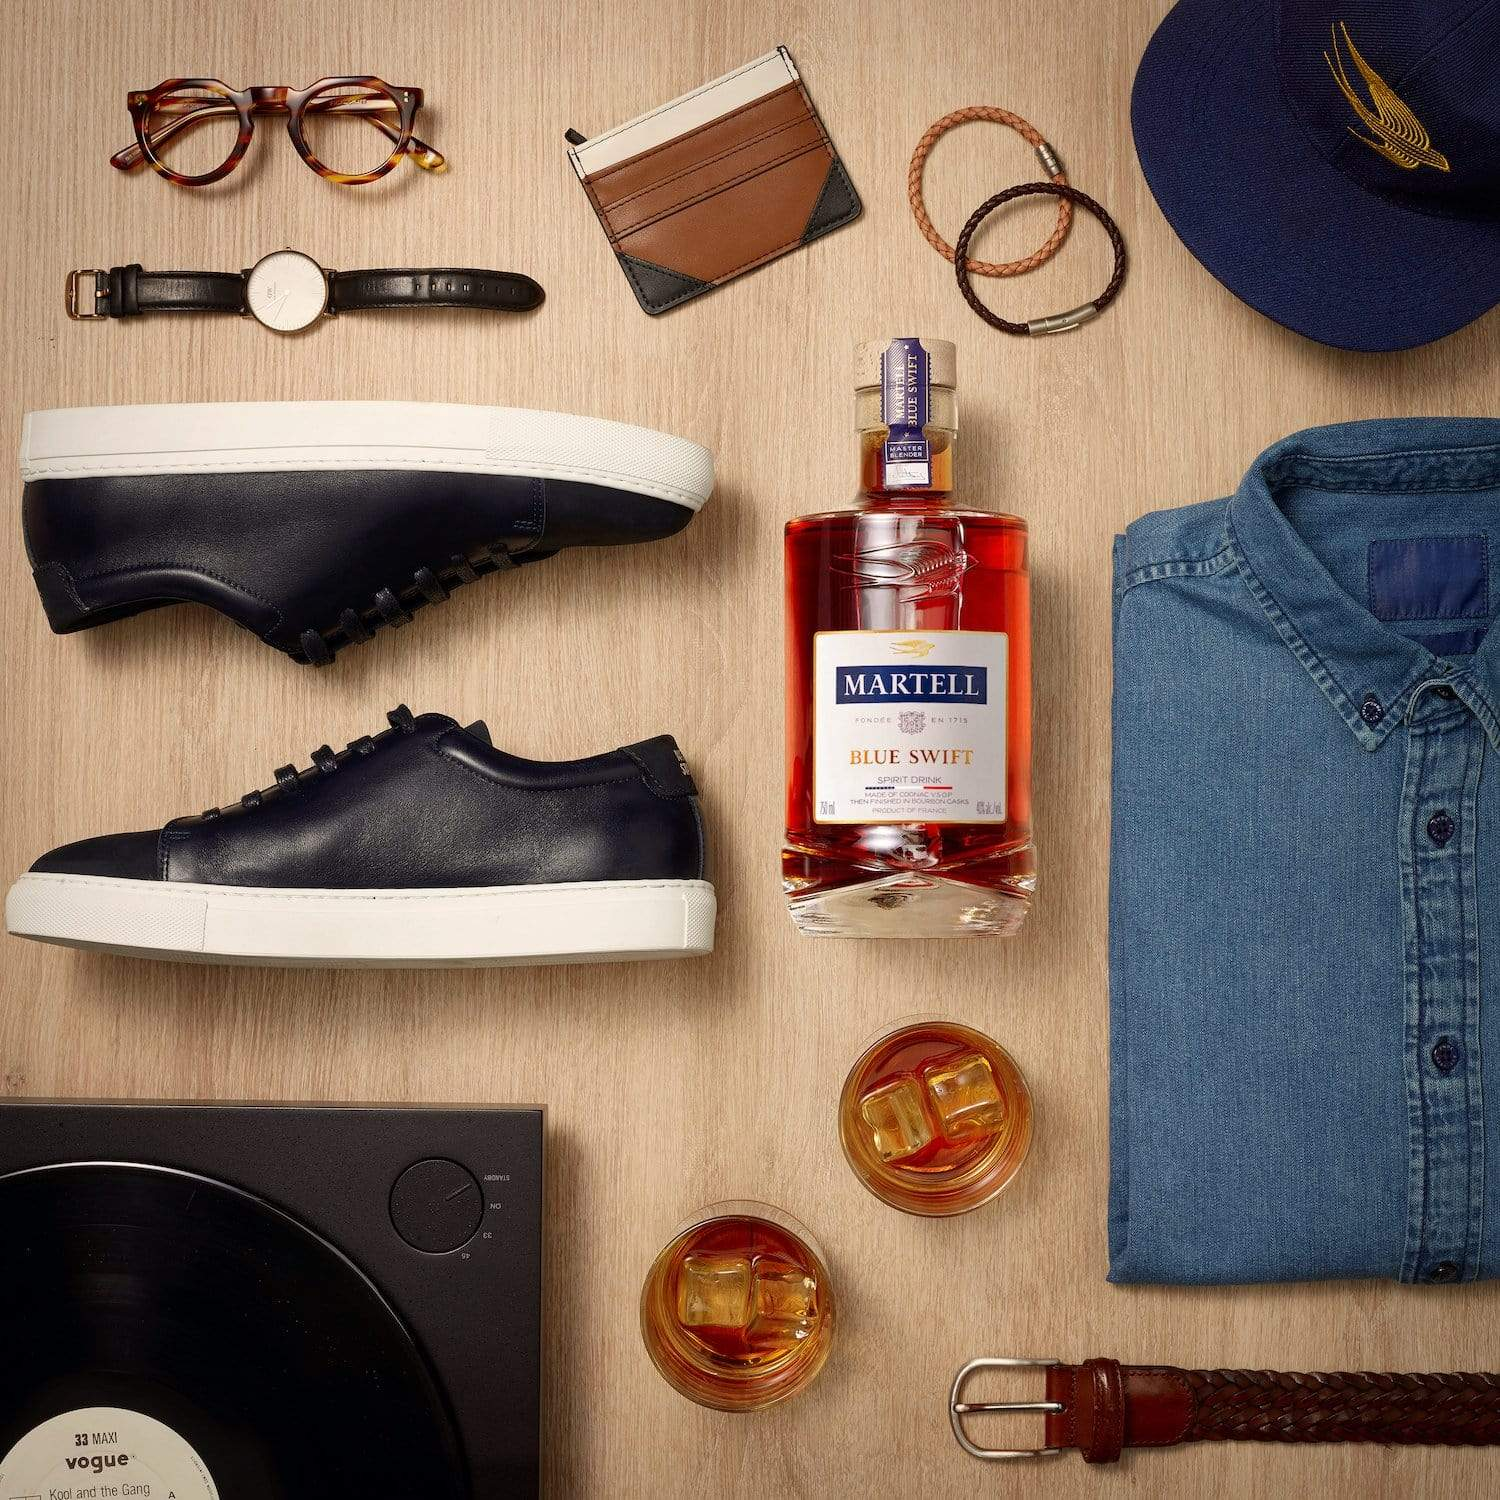 Blue Swift Martell Cognac on a table with shoes, shirt, watch and every day menswear items.